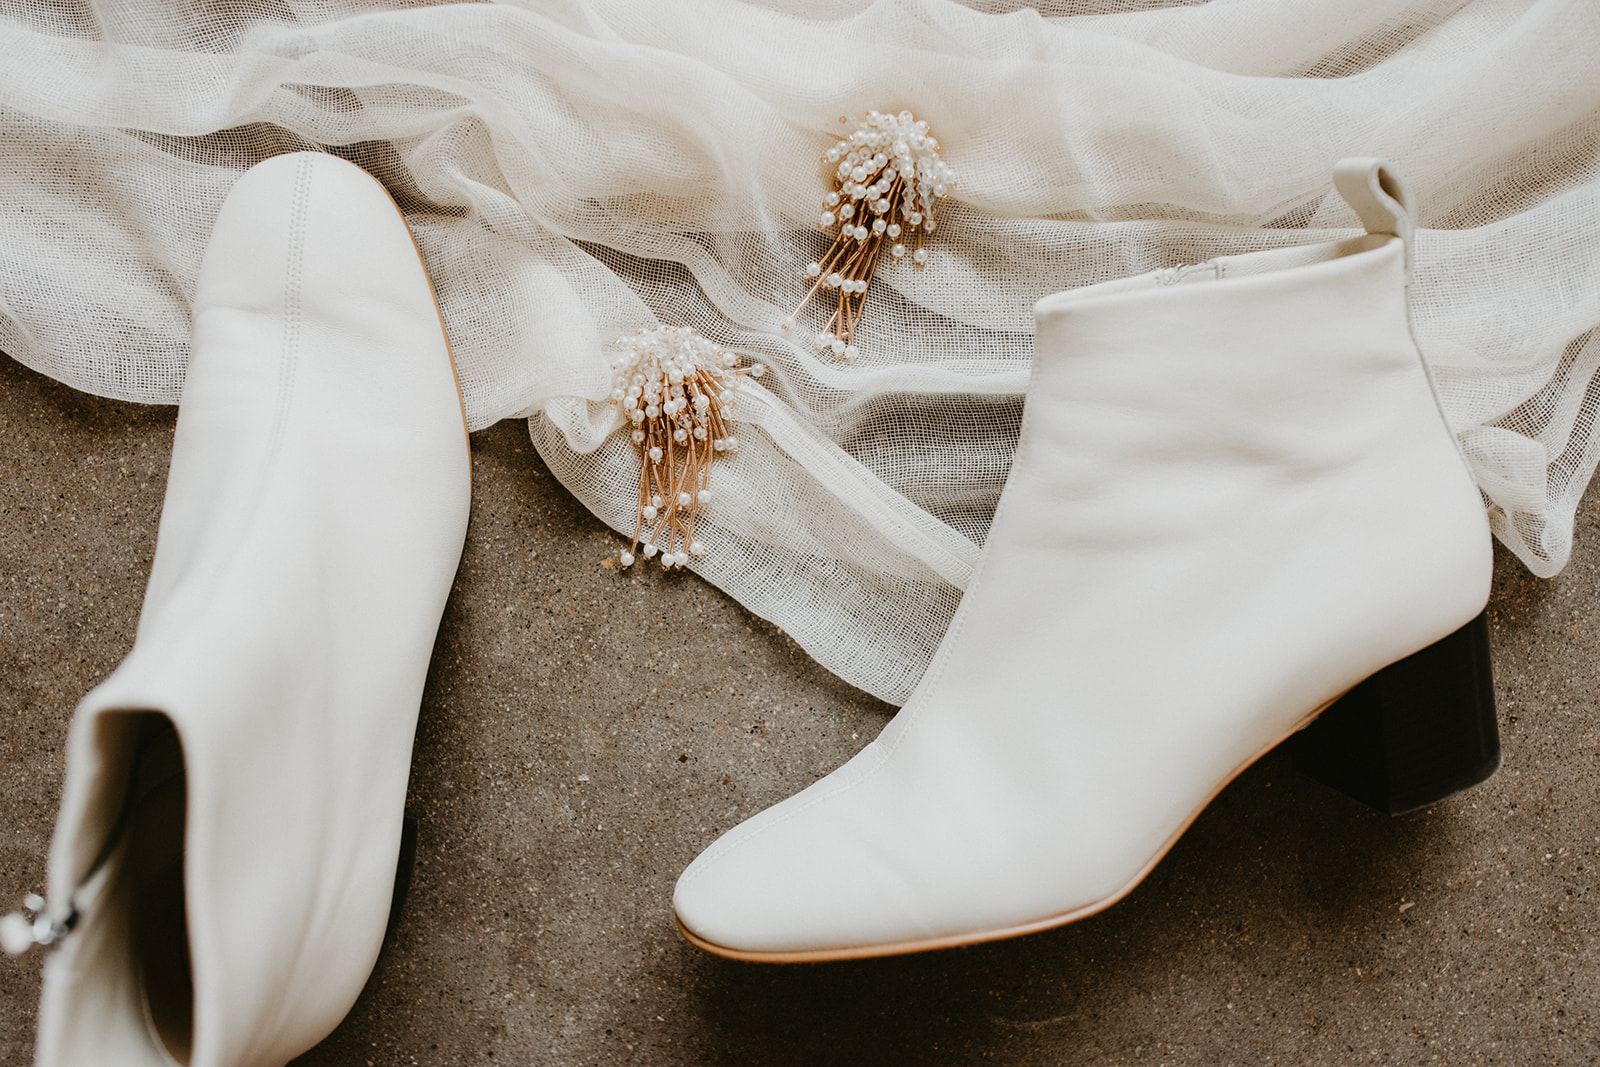 Bridal Shoes + Creamy Booties + Bridal Wedding Day Earrings + Jewelry + Boho + Hollywood Glam